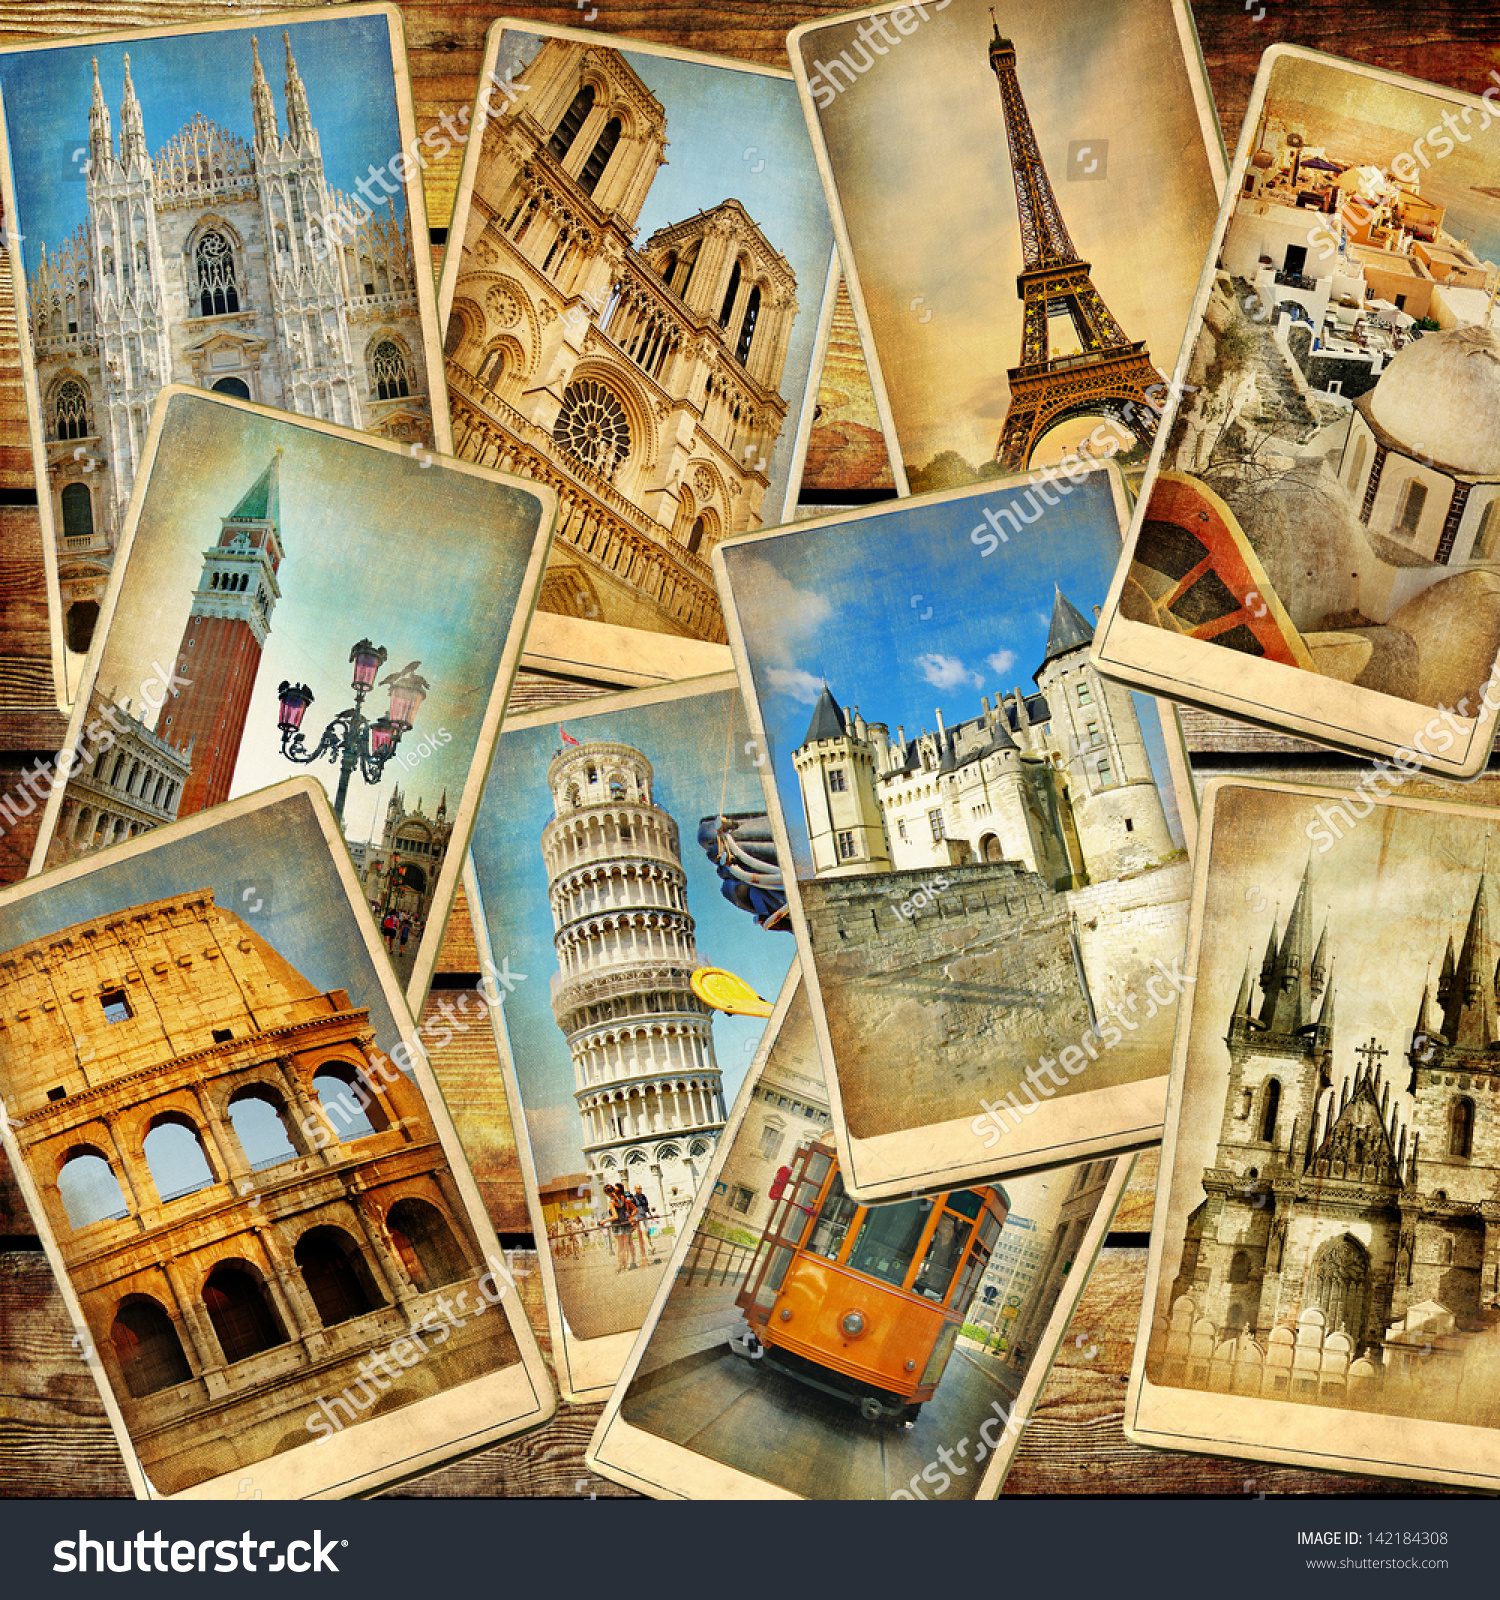 vintage collage european travel stock photo 142184308 shutterstock. Black Bedroom Furniture Sets. Home Design Ideas